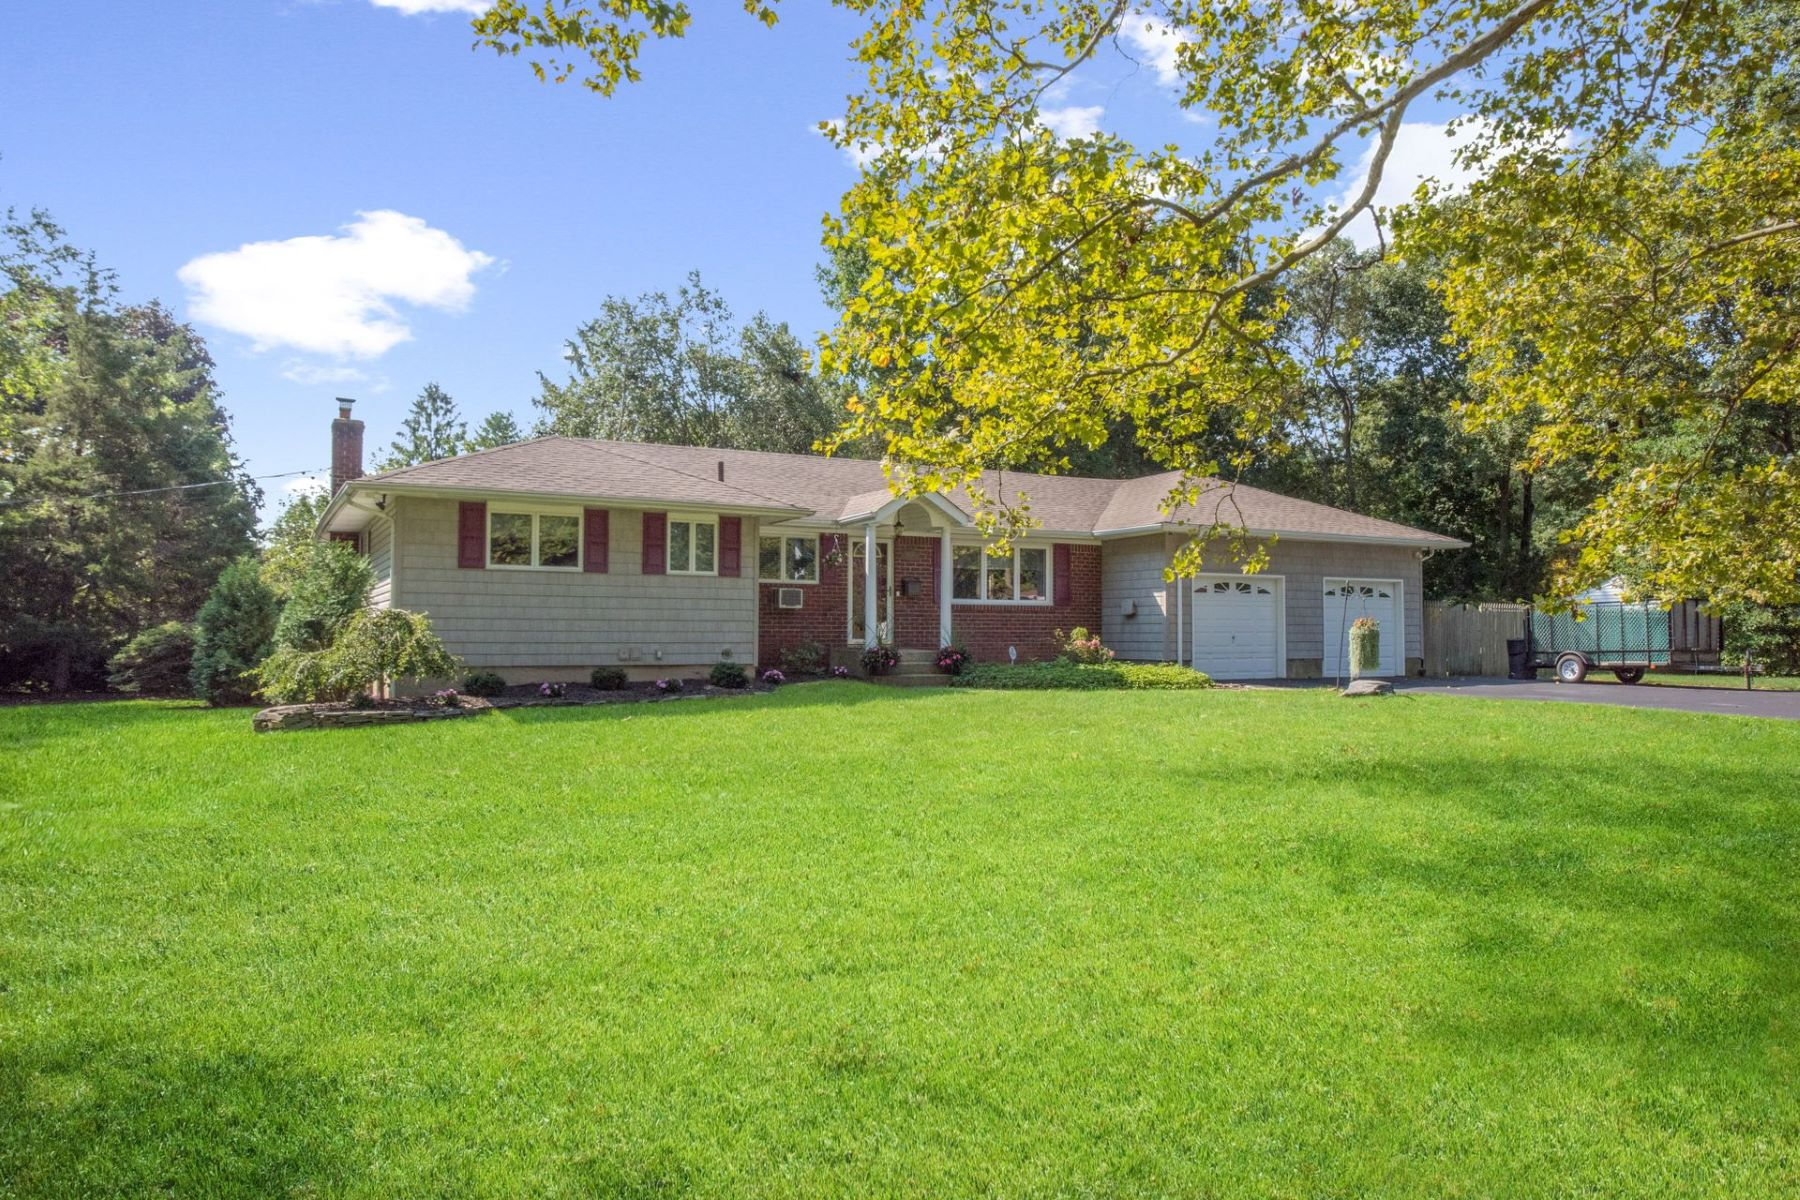 Single Family Homes for Active at Commack 8 Campden Lane Commack, New York 11725 United States